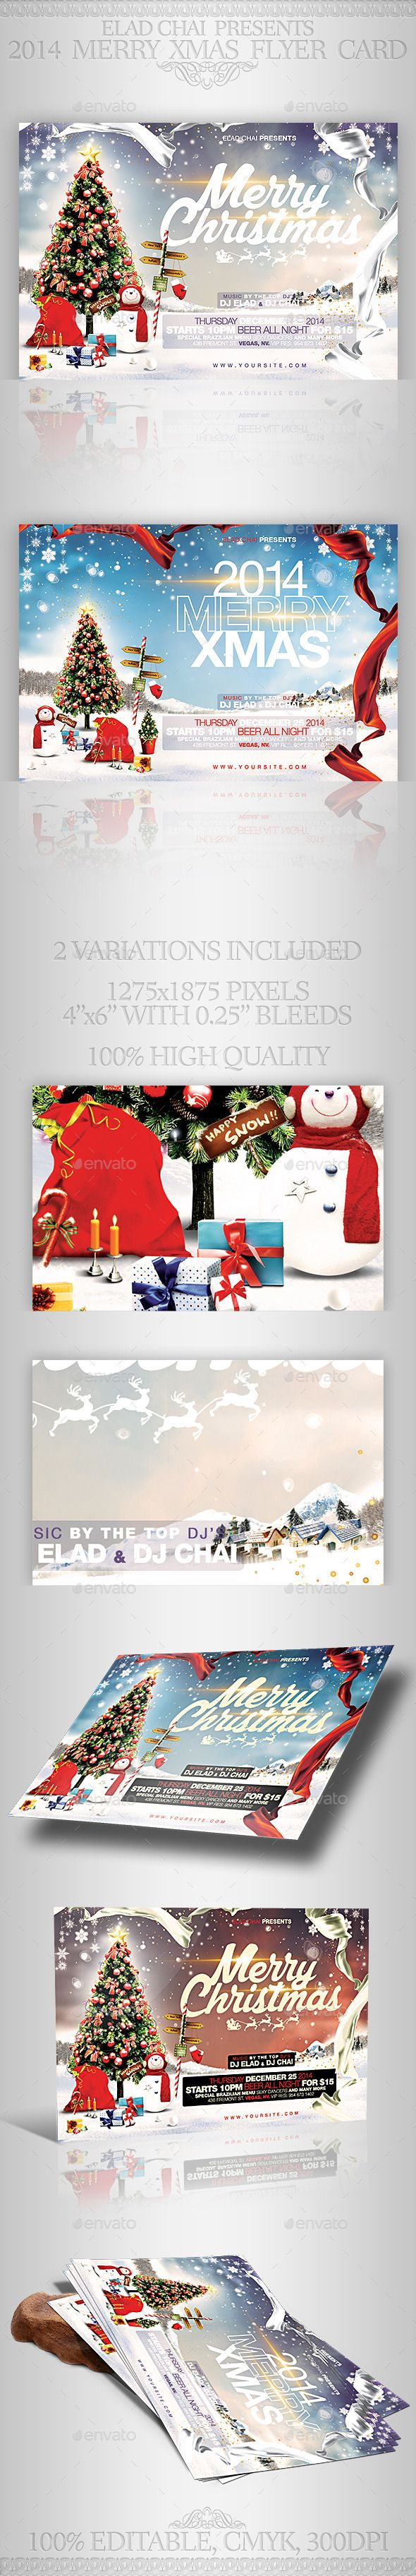 Christmas Flyer Card Template  Christmas Flyer Card